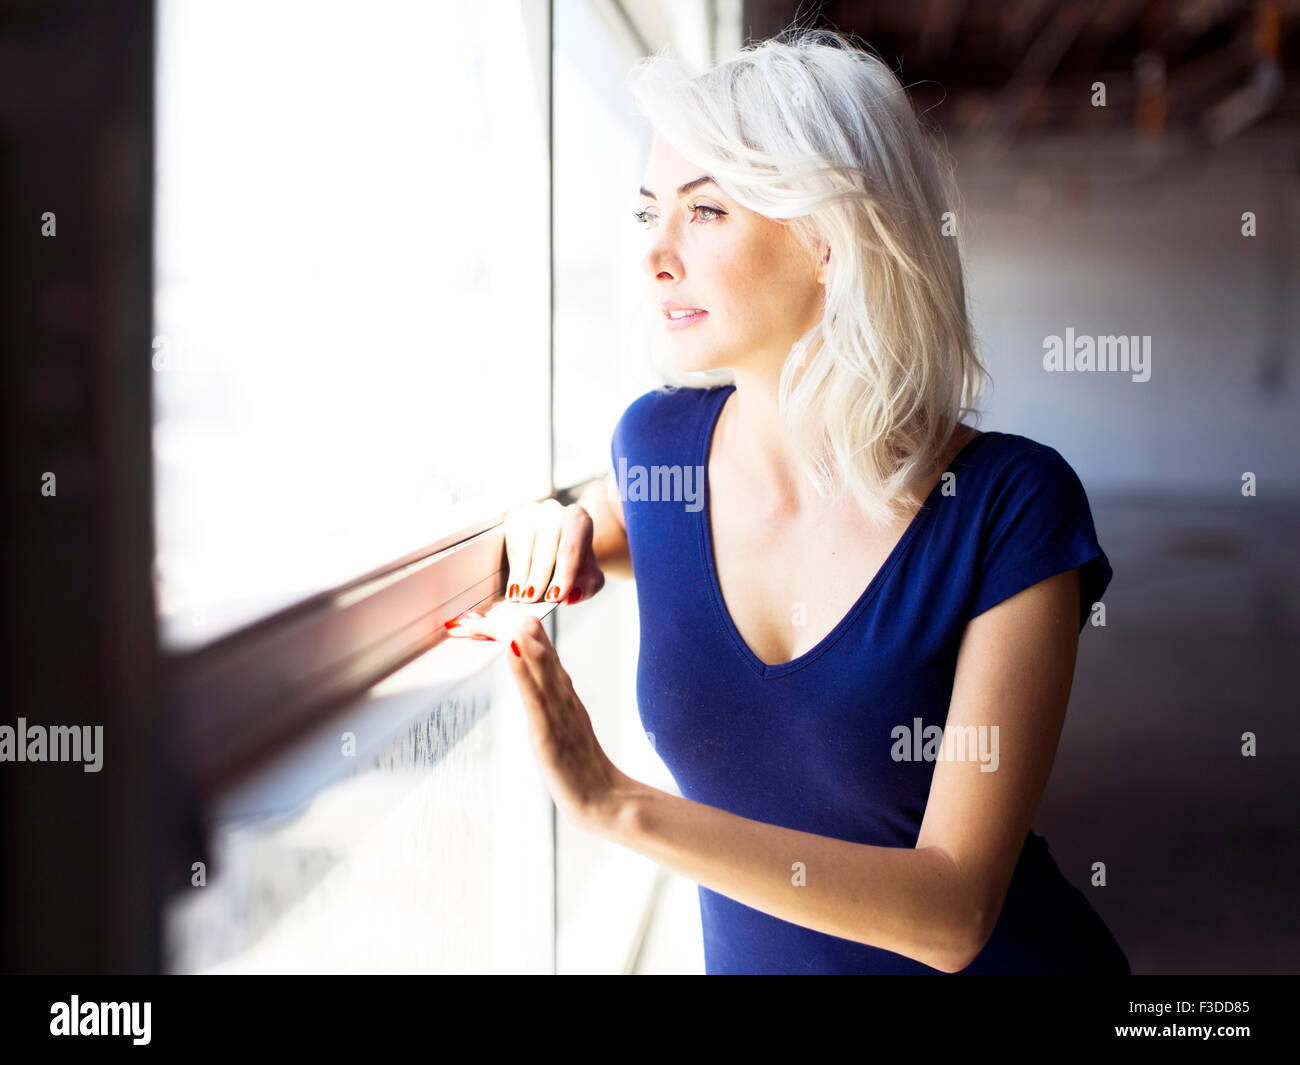 Woman looking through window Stock Photo